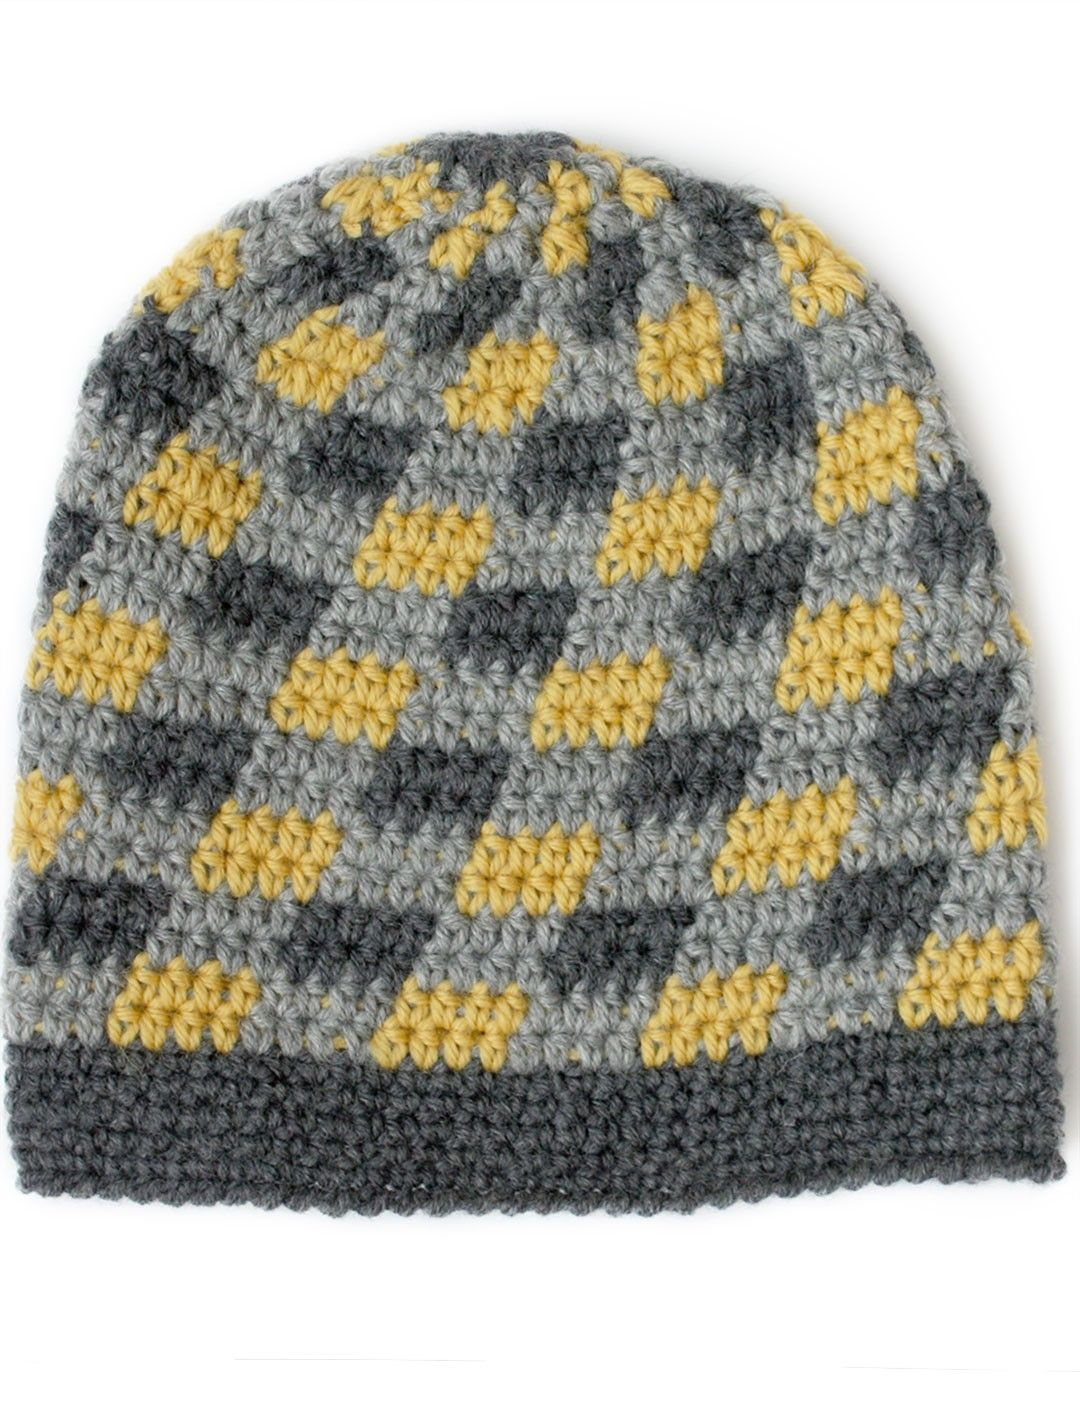 Yarnspirations.com - Patons Plaid Slouchy Beanie - Patterns ...